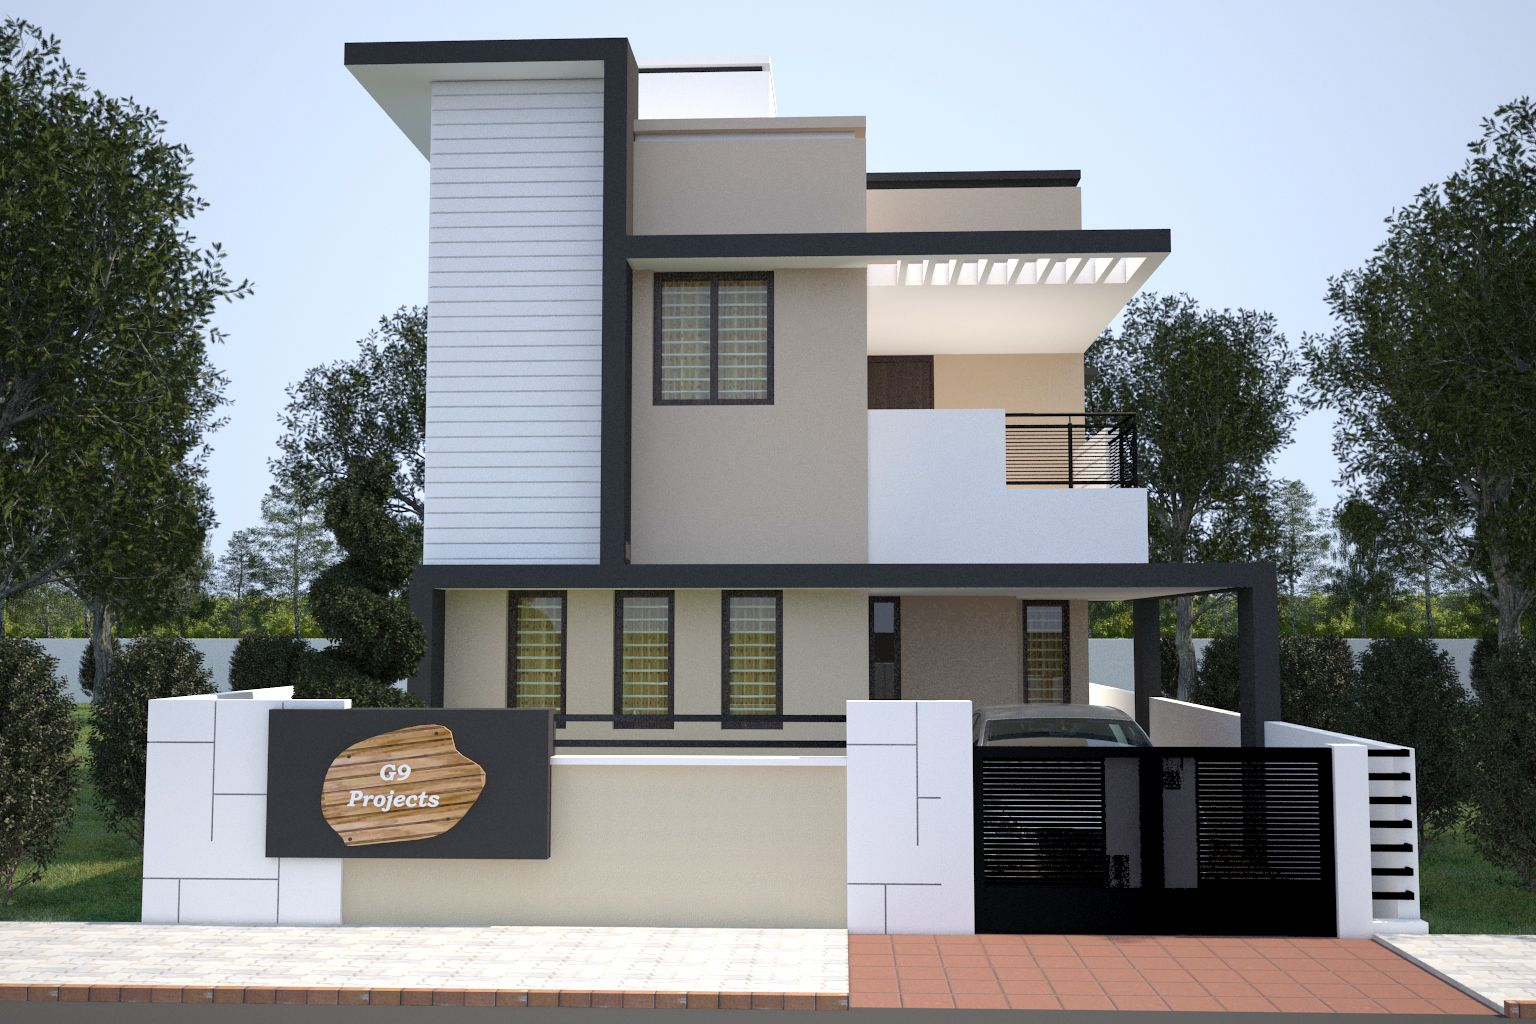 2 Story Apartment Building Exterior Design Furthermore Kerala Home Design  Plans Moreover Open Plan Kitchen Living